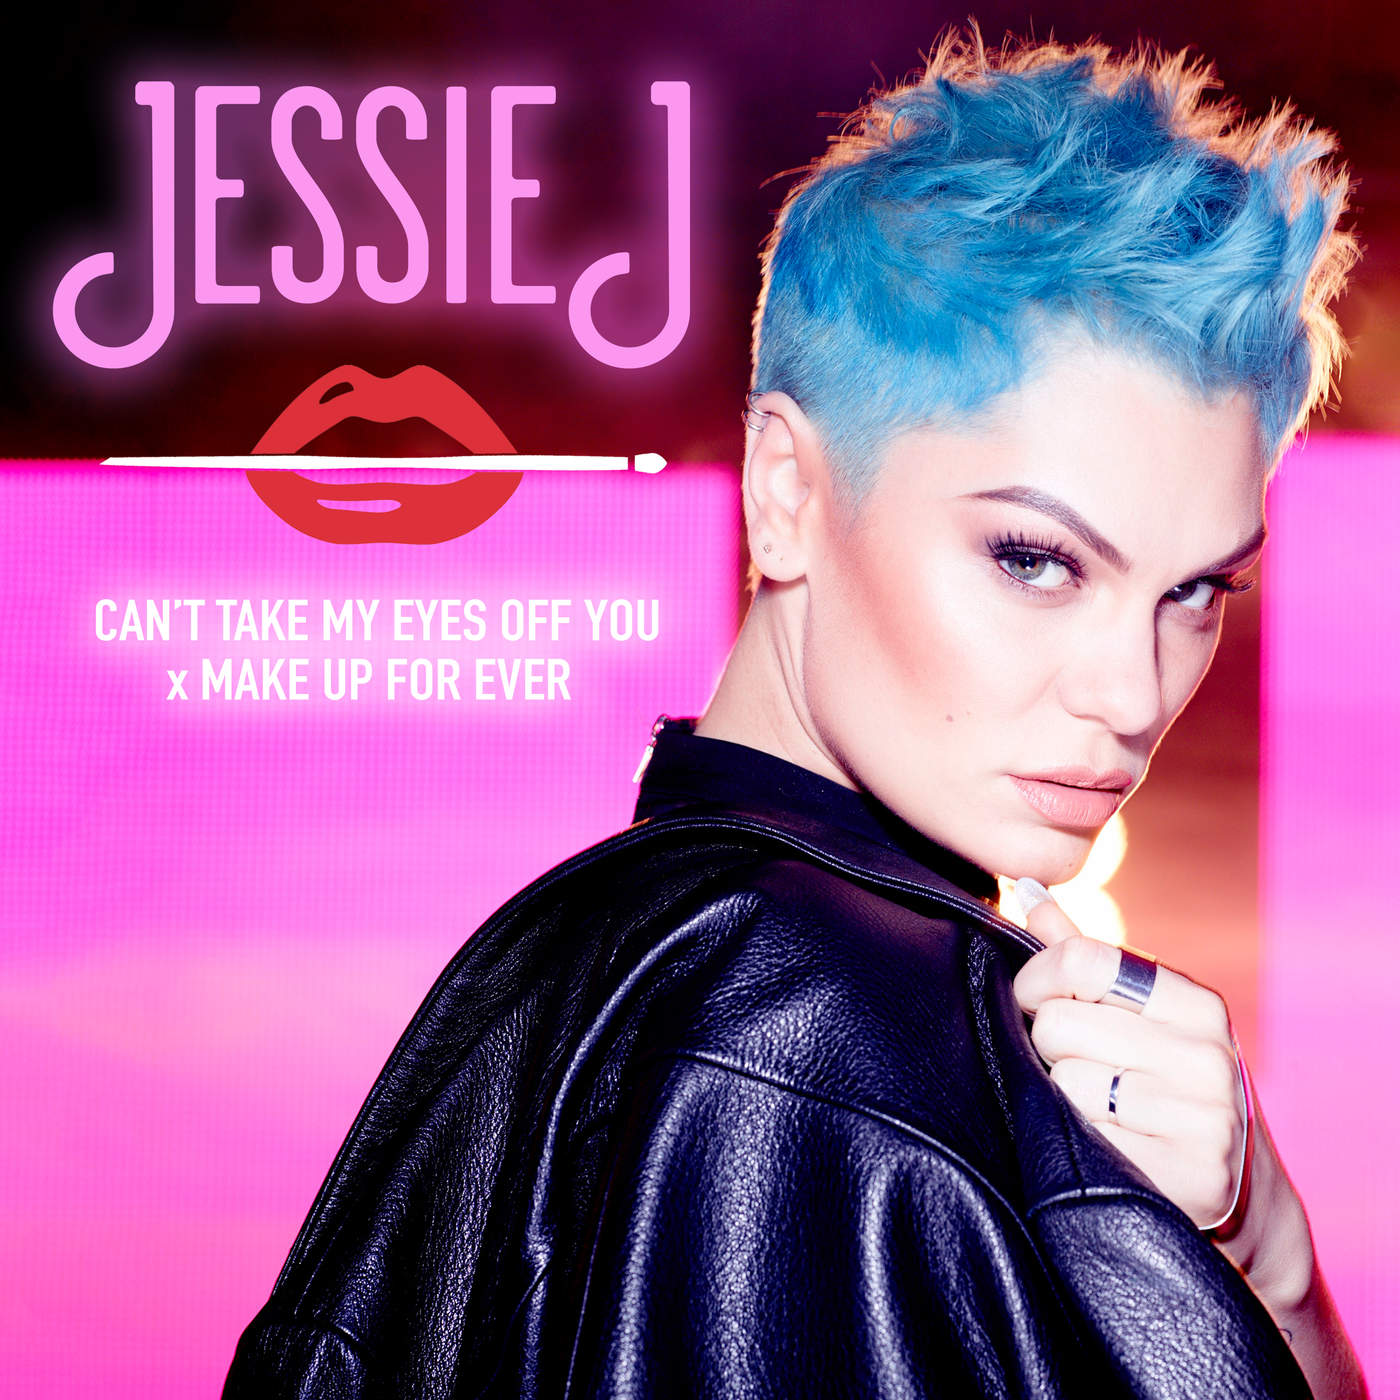 Jessie J - Can't Take My Eyes Off You x MAKE UP FOR EVER - Single Cover